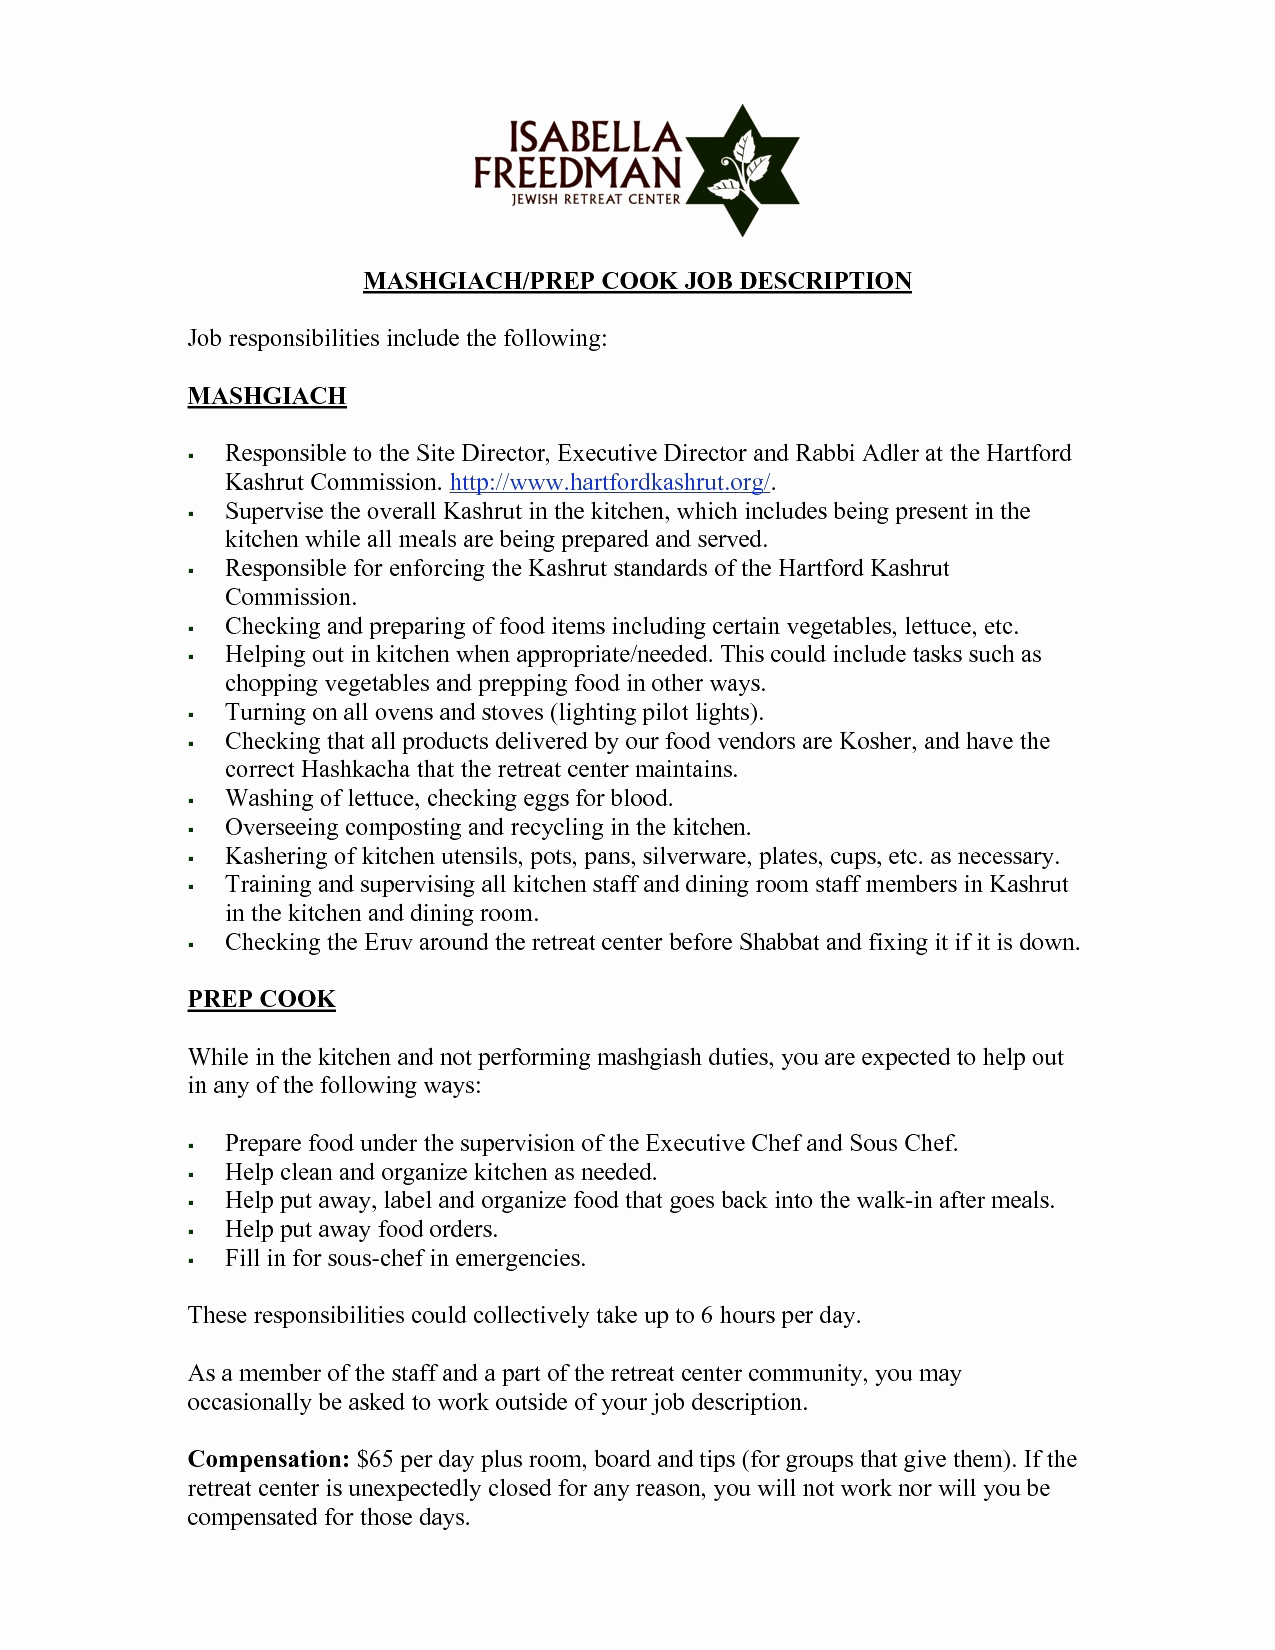 Professional Cover Letter Template - Writing A Professional Cover Letter New Resume and Cover Letter